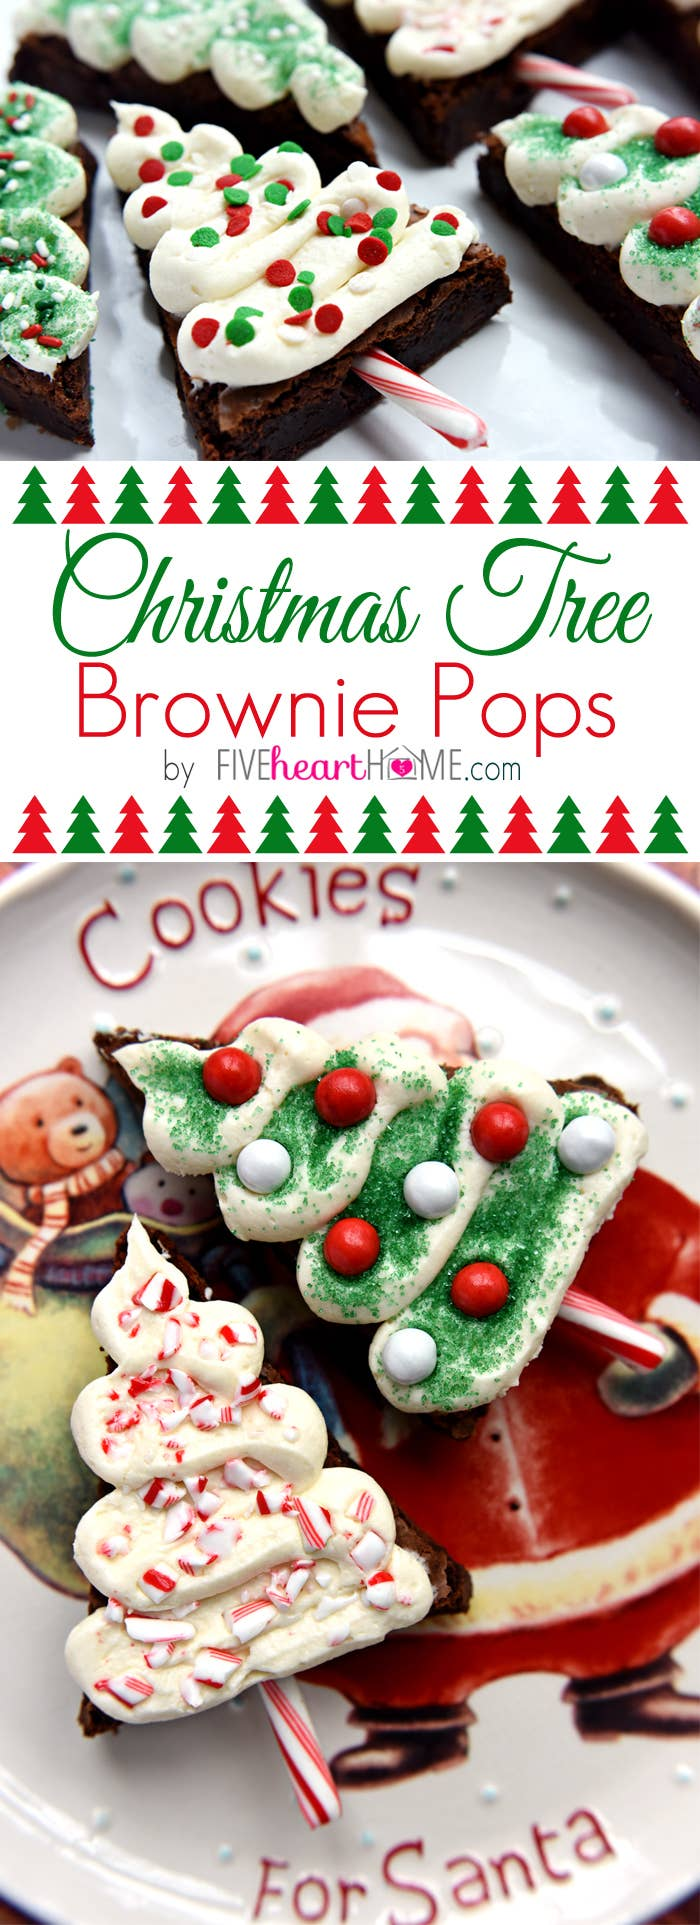 19 amazingly cute ideas for christmas treats that you can actually make christmas tree brownie pops i am legit obsessed with how cute these are get the recipe here solutioingenieria Images